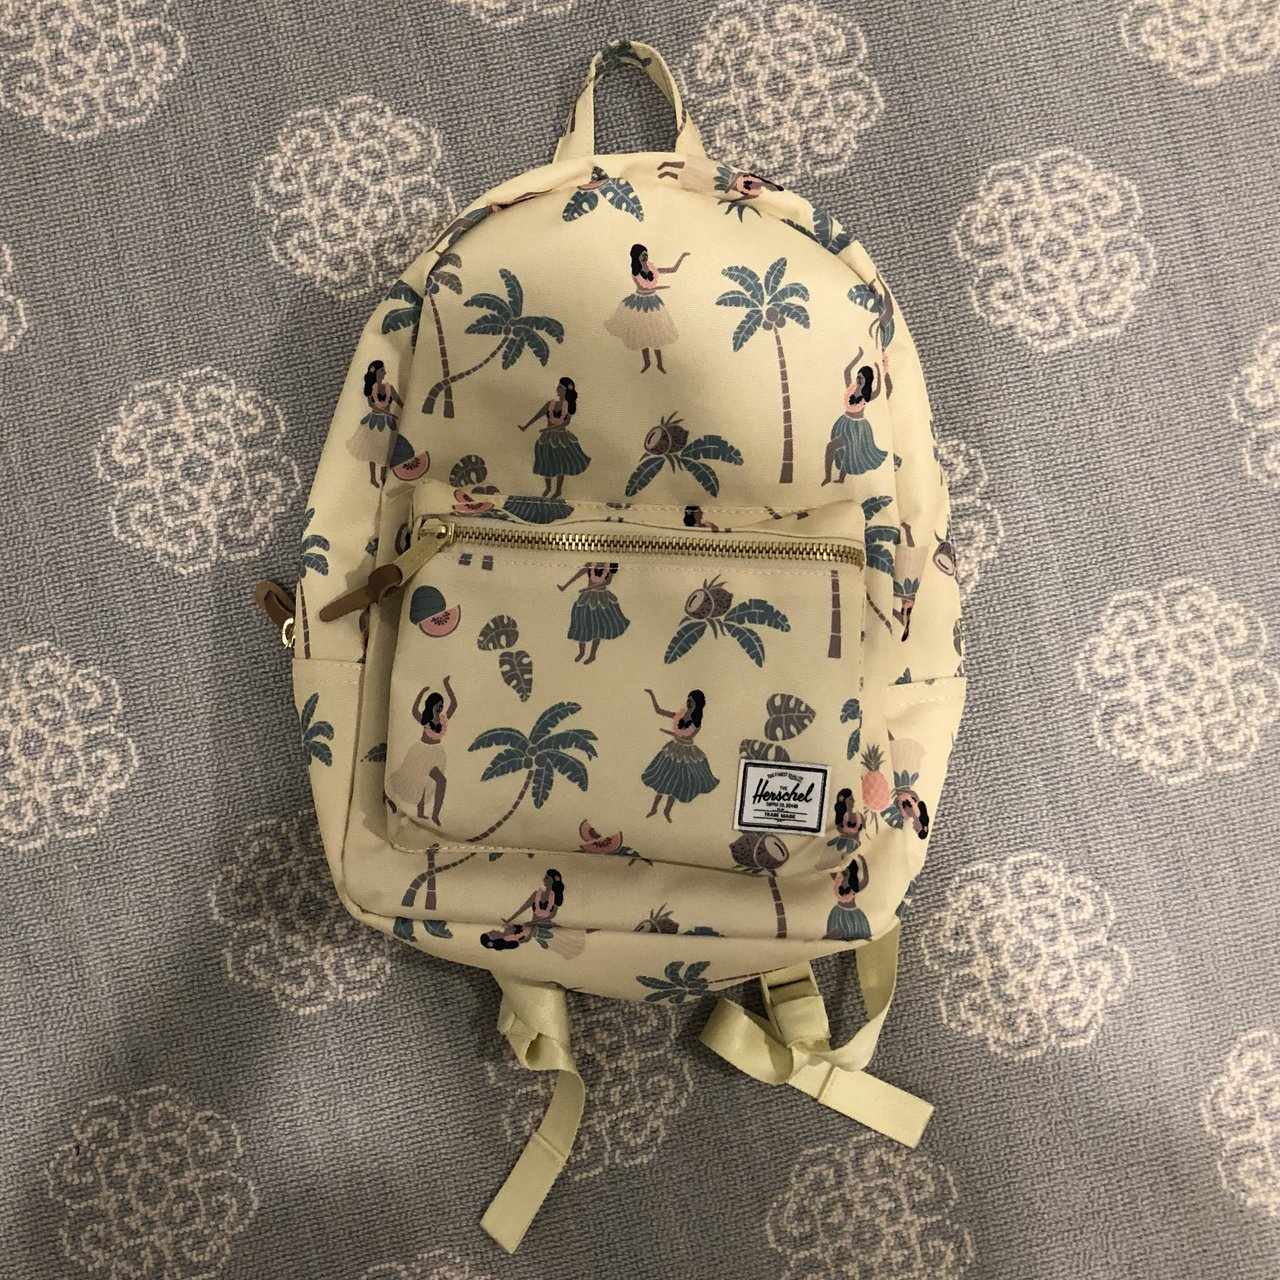 2479b458e7e1 ⚡ HERSCHEL SUPPLY CO. BACKPACK   ⚡ MINI BACKPACK WITH - Depop